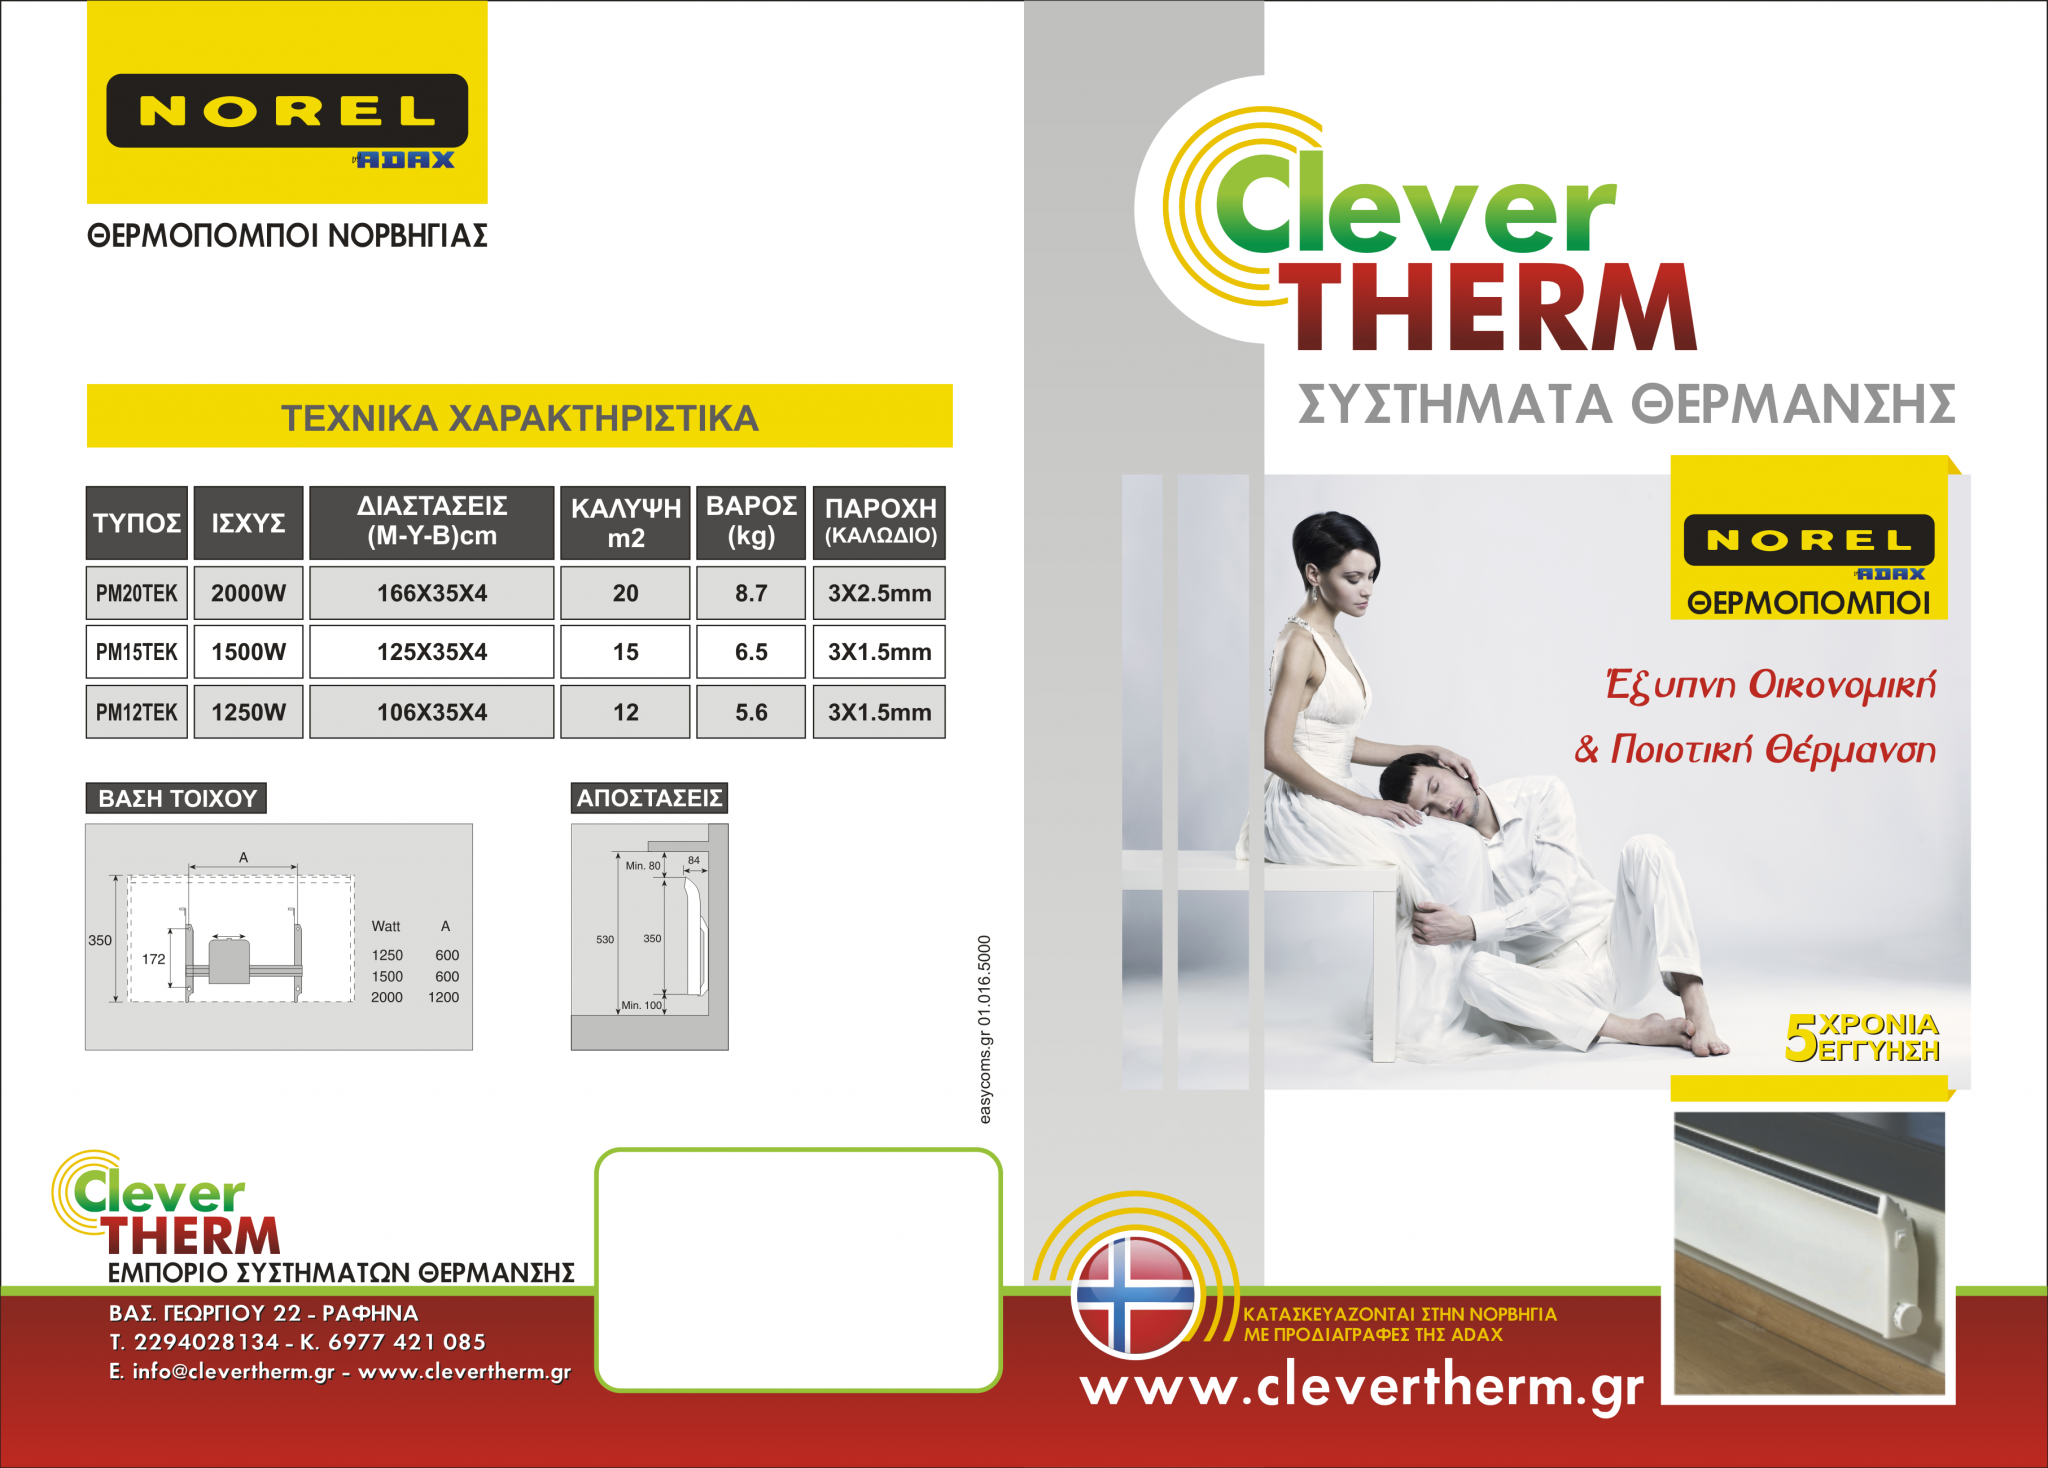 Clevertherm norel thermopompoi glamox